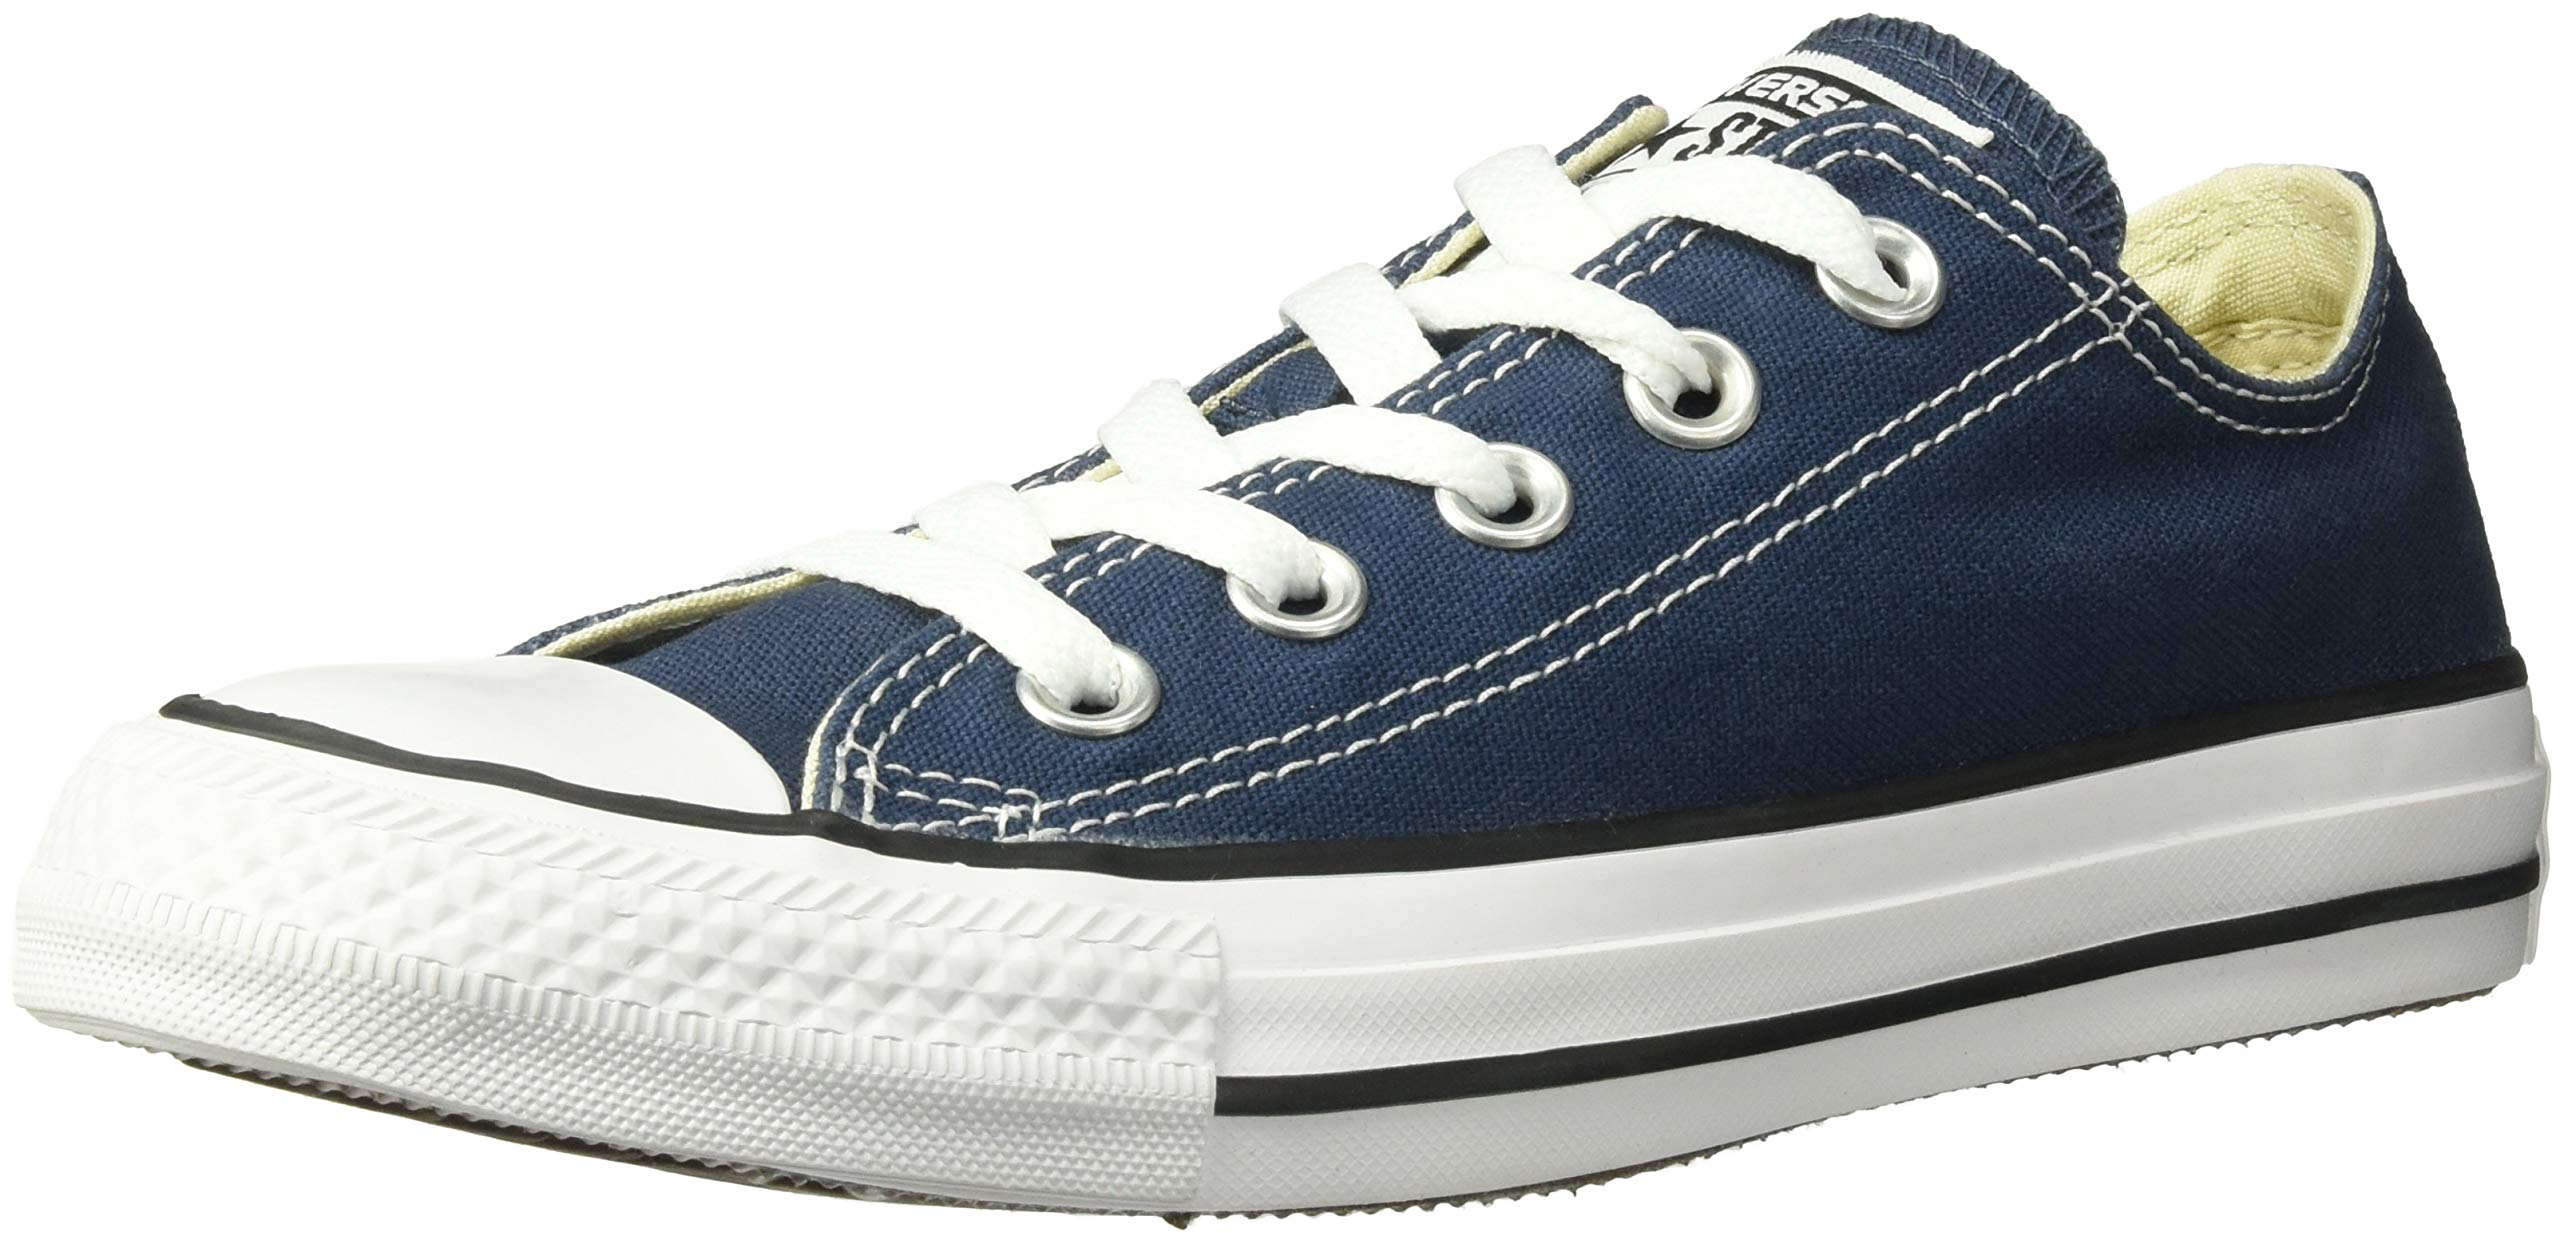 Converse Unisex Chuck Taylor All Star Low Top Navy Sneakers - 12MN-14WO B(M) US by Converse (Image #1)